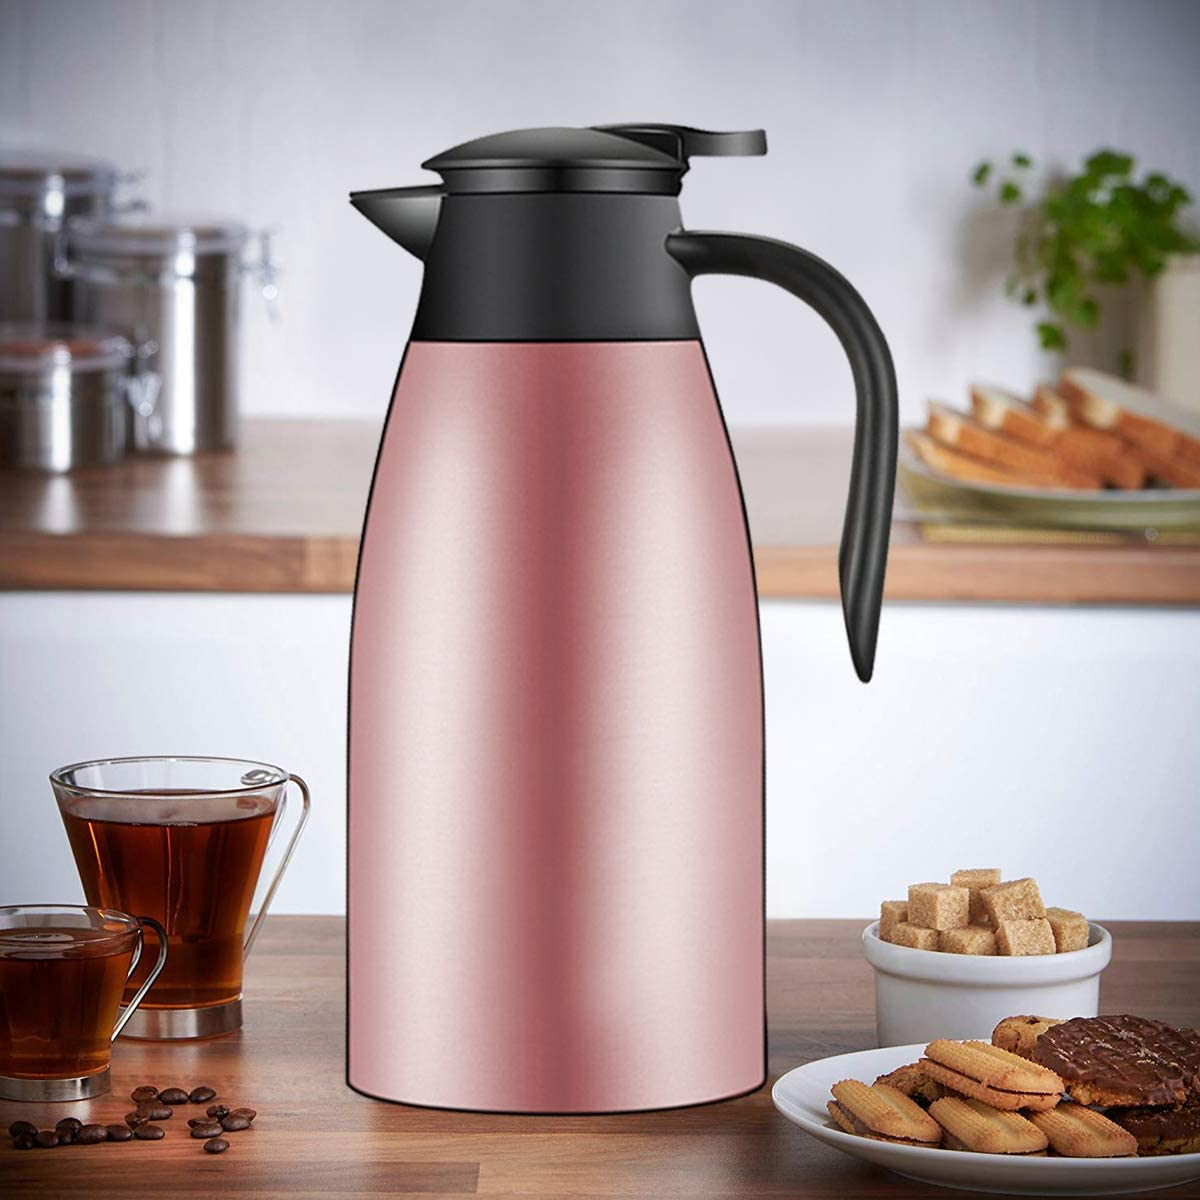 Black Choppan 68 Oz Stainless Steel Thermal Coffee and Tea Carafe Double Walled Vacuum Insulated Thermos 12 Hours Heat/&Cold Retention Kettle